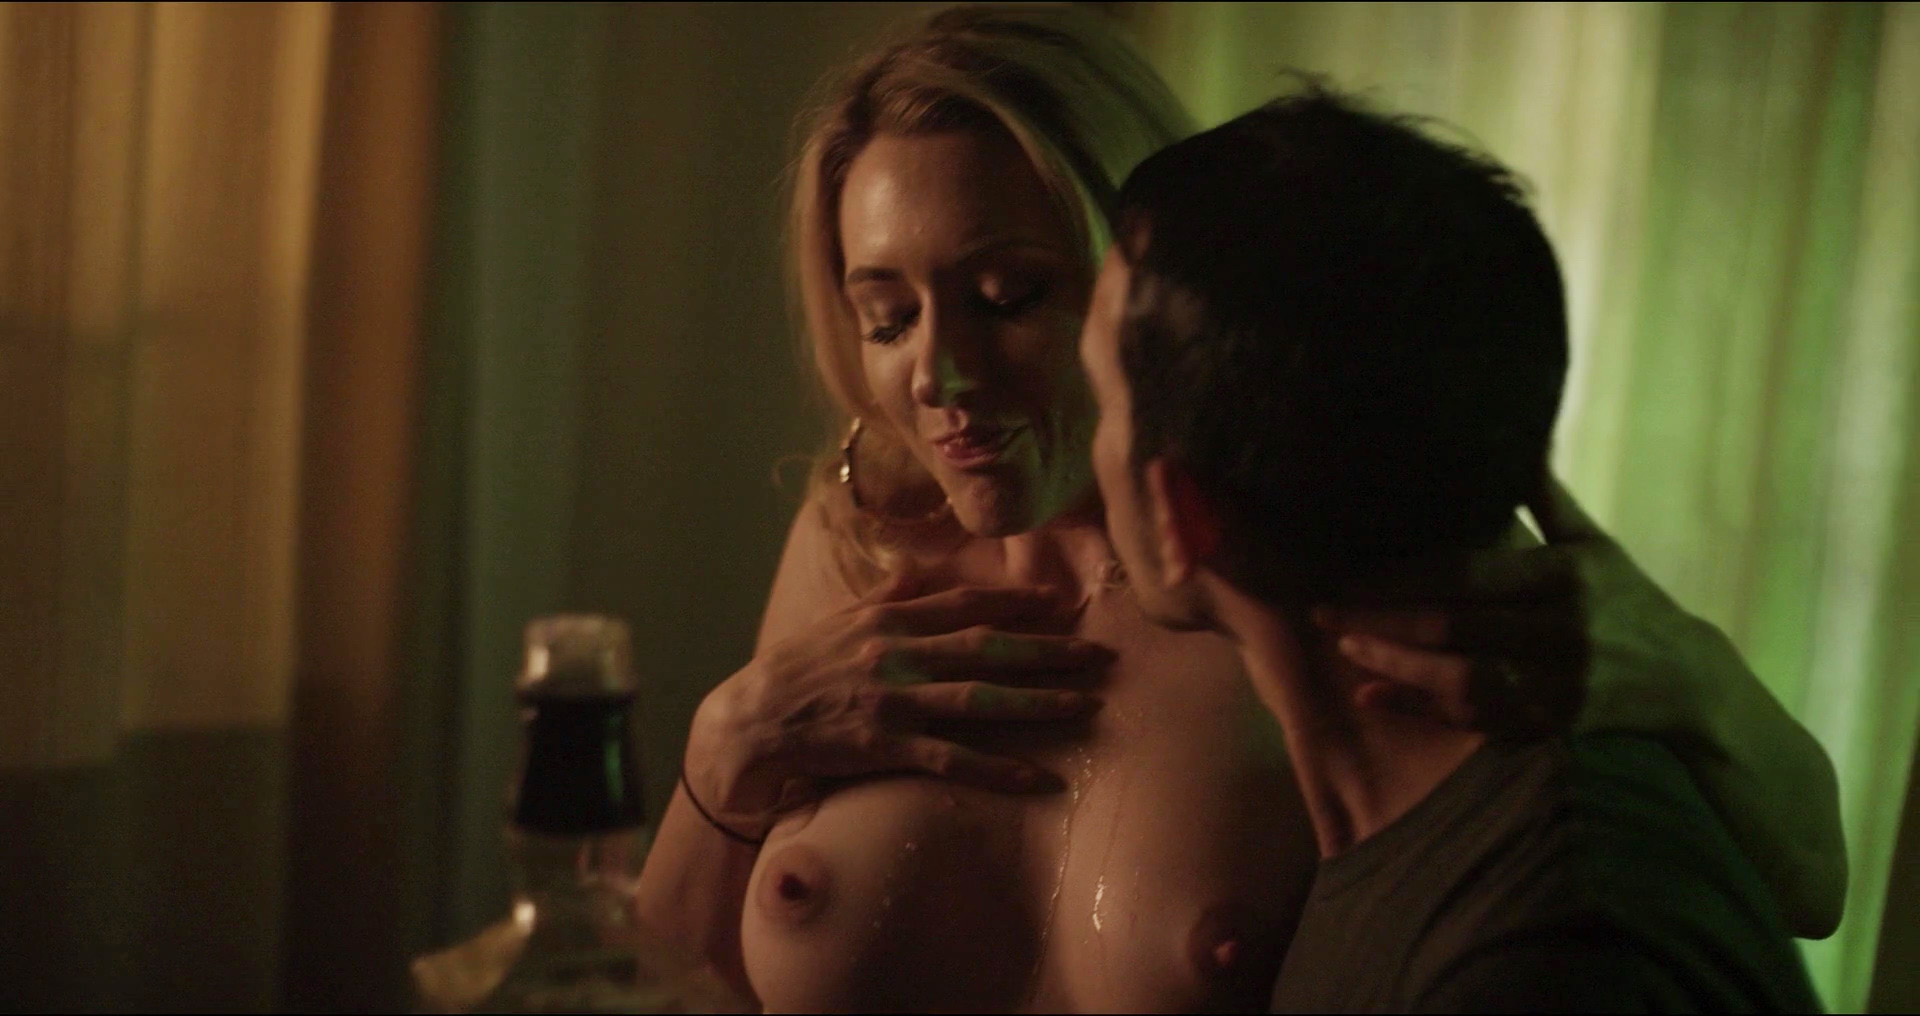 Melissa rauch nude sex scene on scandalplanetcom 9